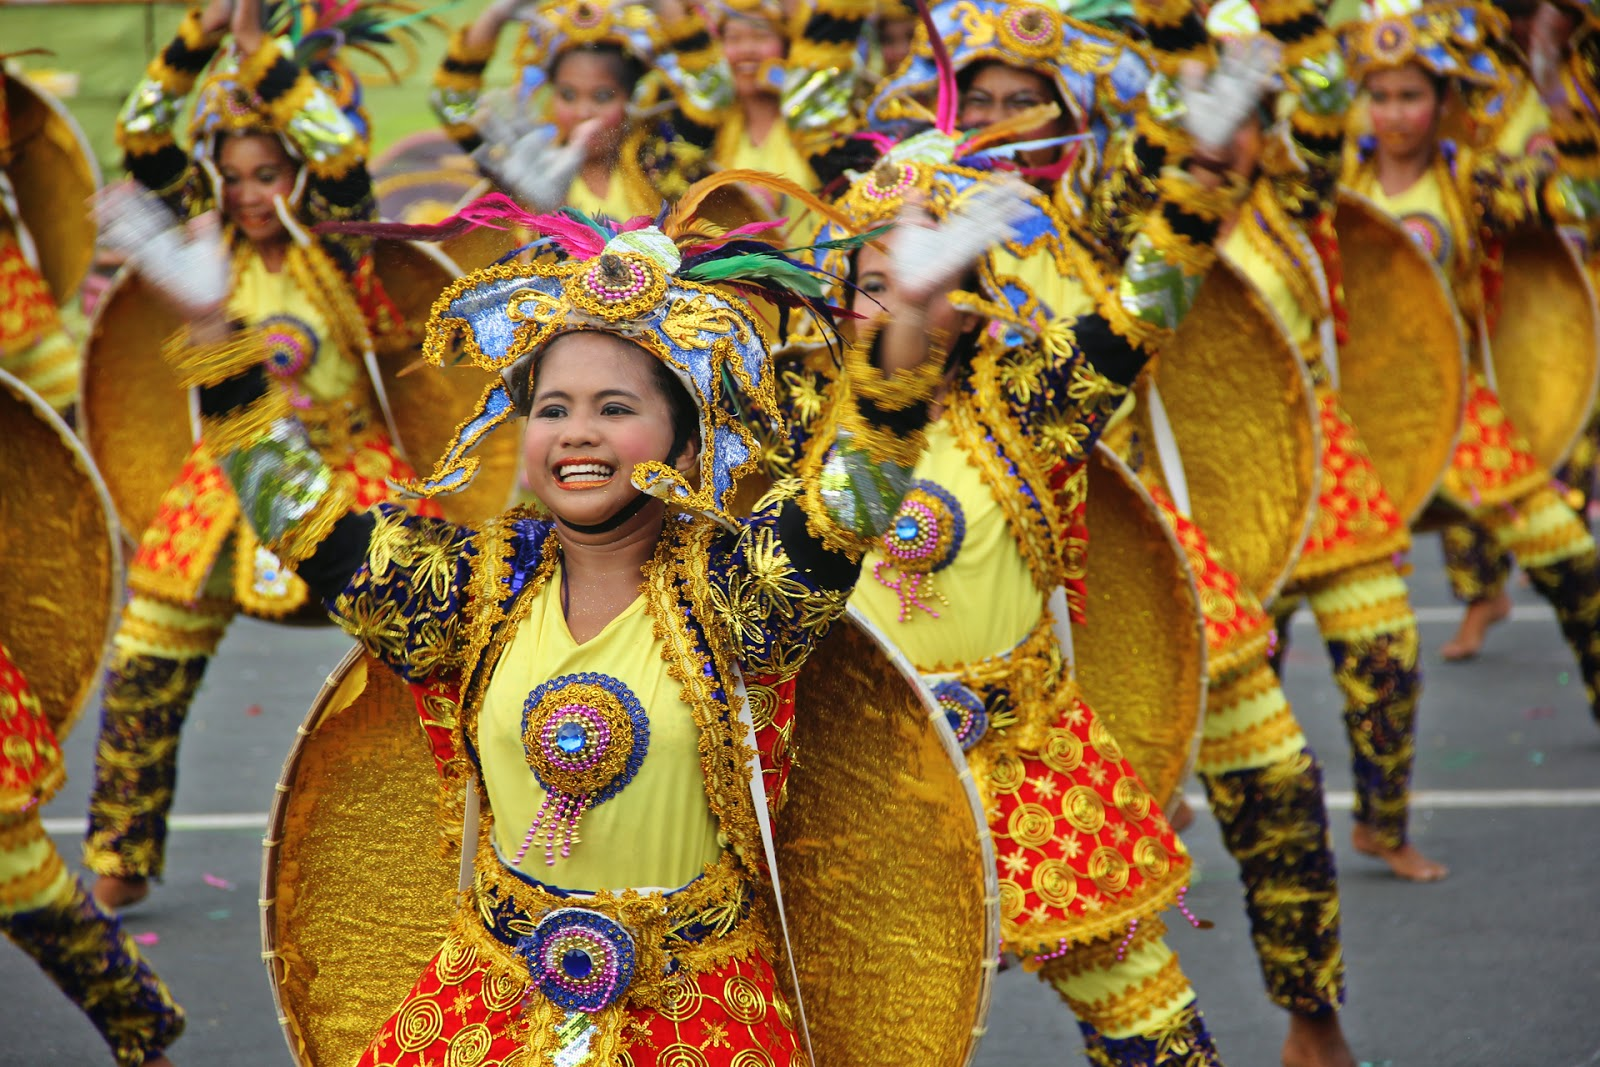 There's a festival which the mother of all and happens every year in the Philippines where dancers enter into fierce competitions. A one million Philippines peso grand prize; coupled with the crown title are the main incentives, though the Manila fiesta is packed with cultural and ethnic annotations as well as national pride. Dancing and strutting all the best stuff on the street and stage; the Aliwan festival involves floats, the Reyna and Tugtog.